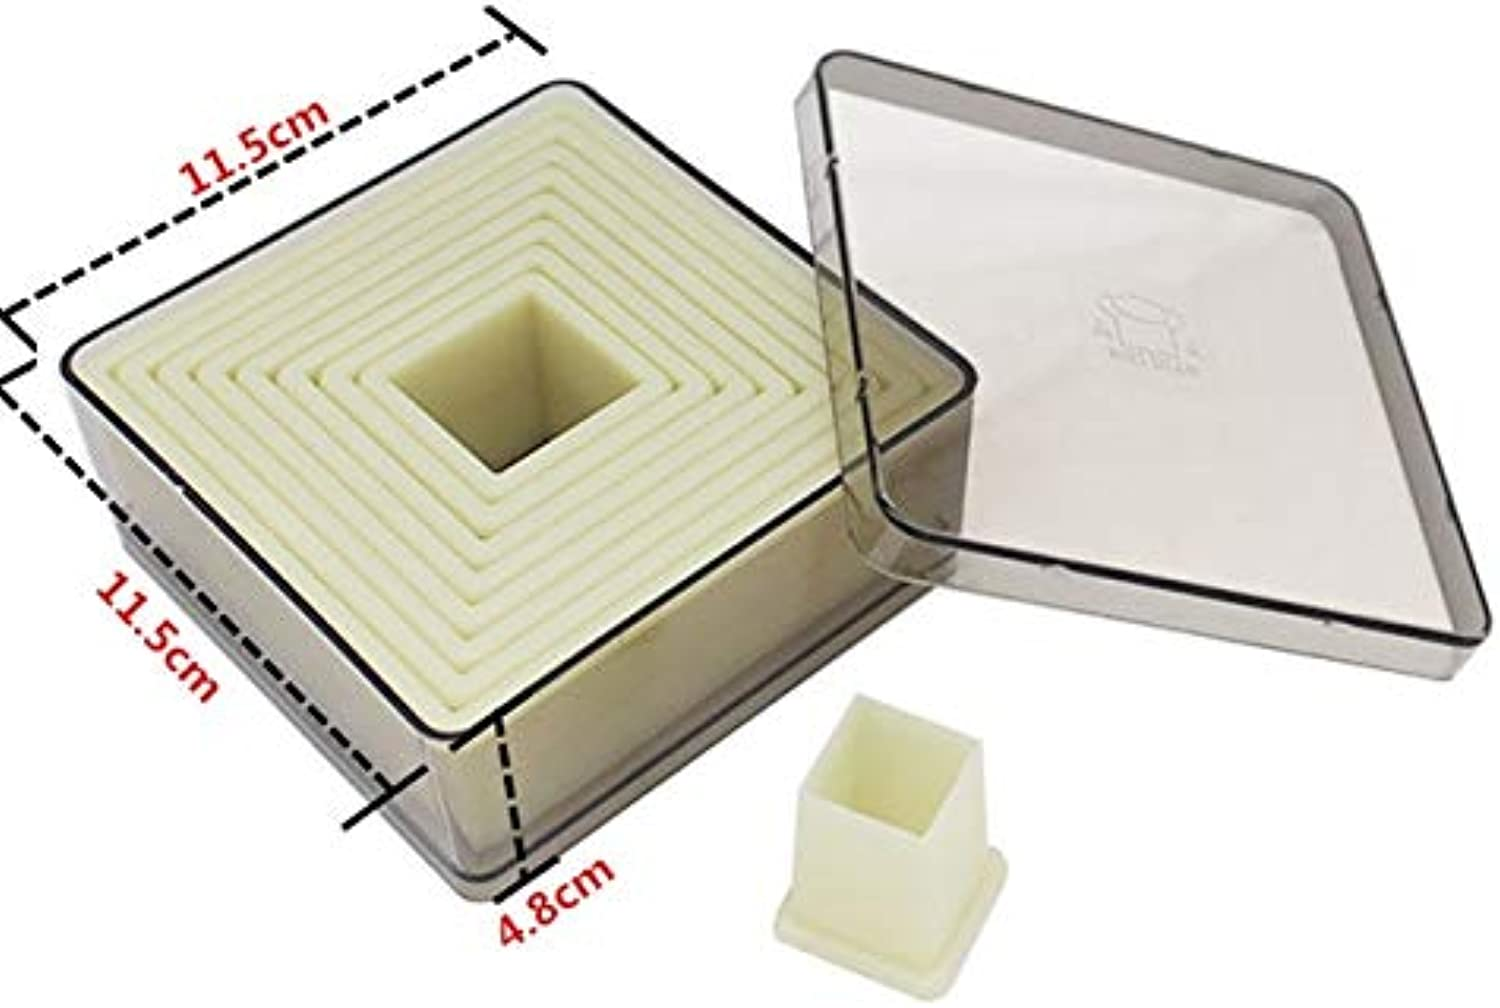 High Quality Nylon Cookies Cutter Set Plastic Cookies Mold 3D Biscuit Molds Kitchen Baking Mould   Square Shape